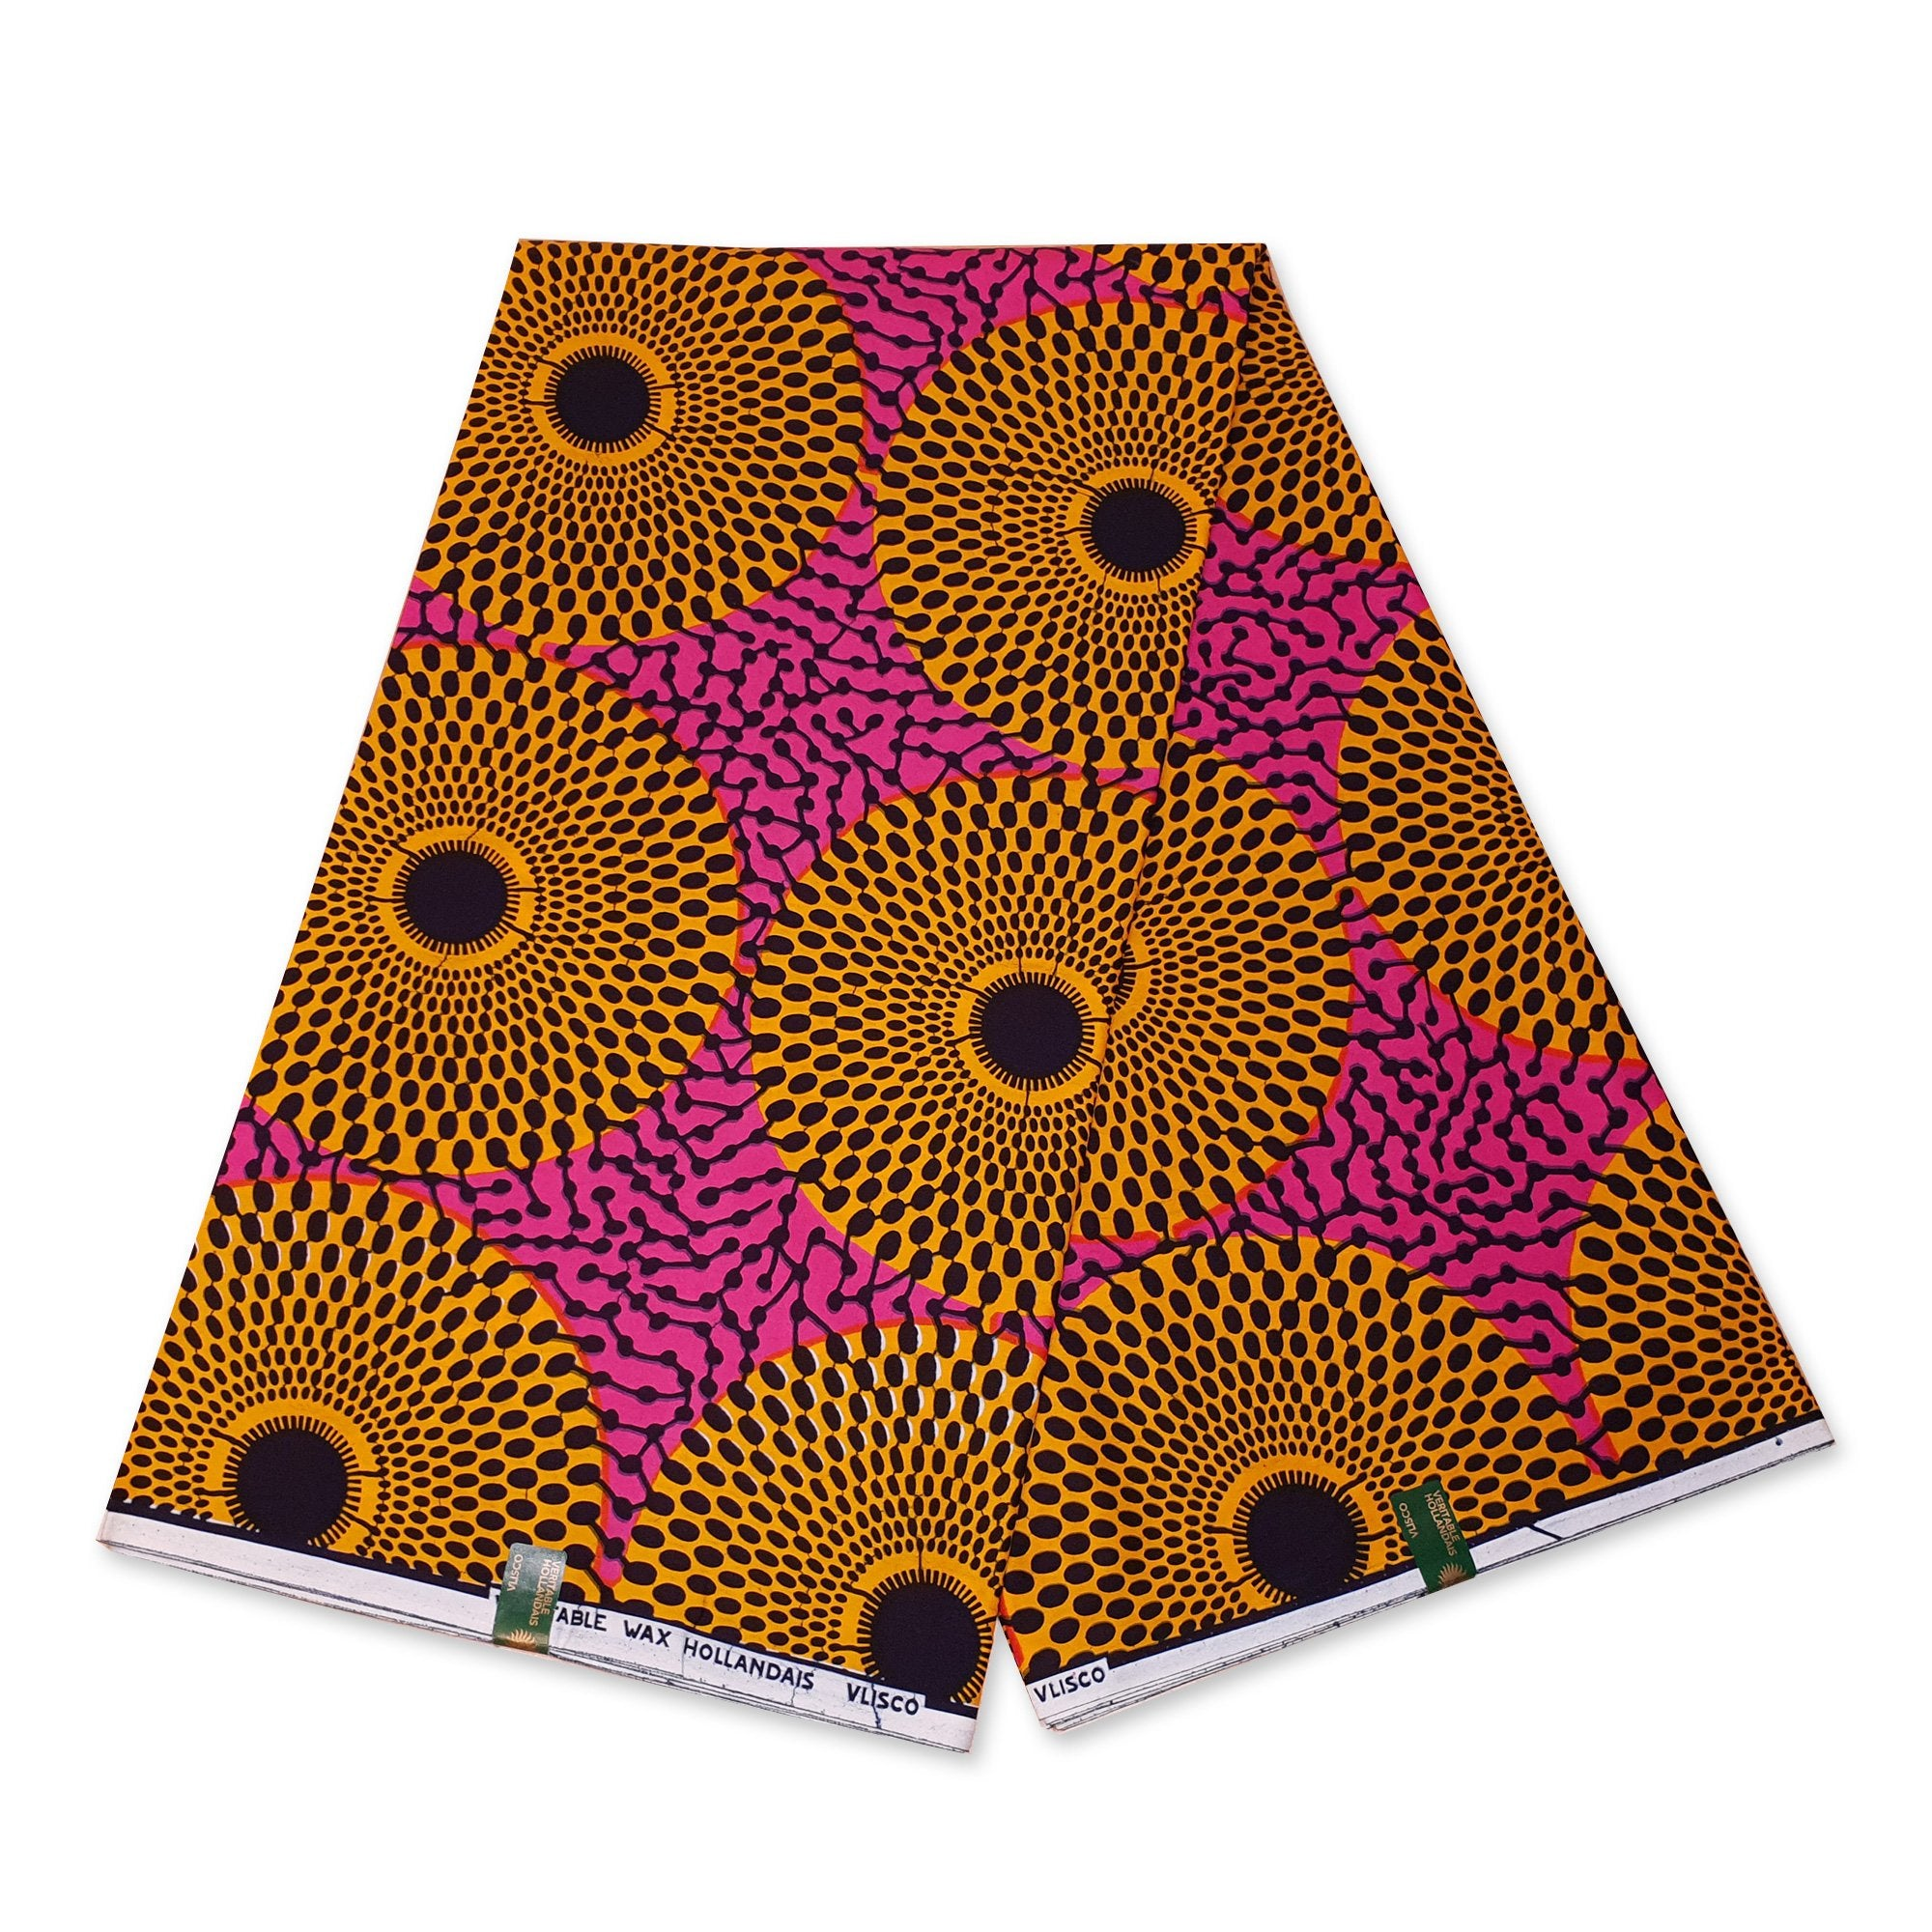 Tissu VLISCO Wax Hollandais - Rose / Jaune Record / Waterwell / Bullseye / Target / Nsu Bura